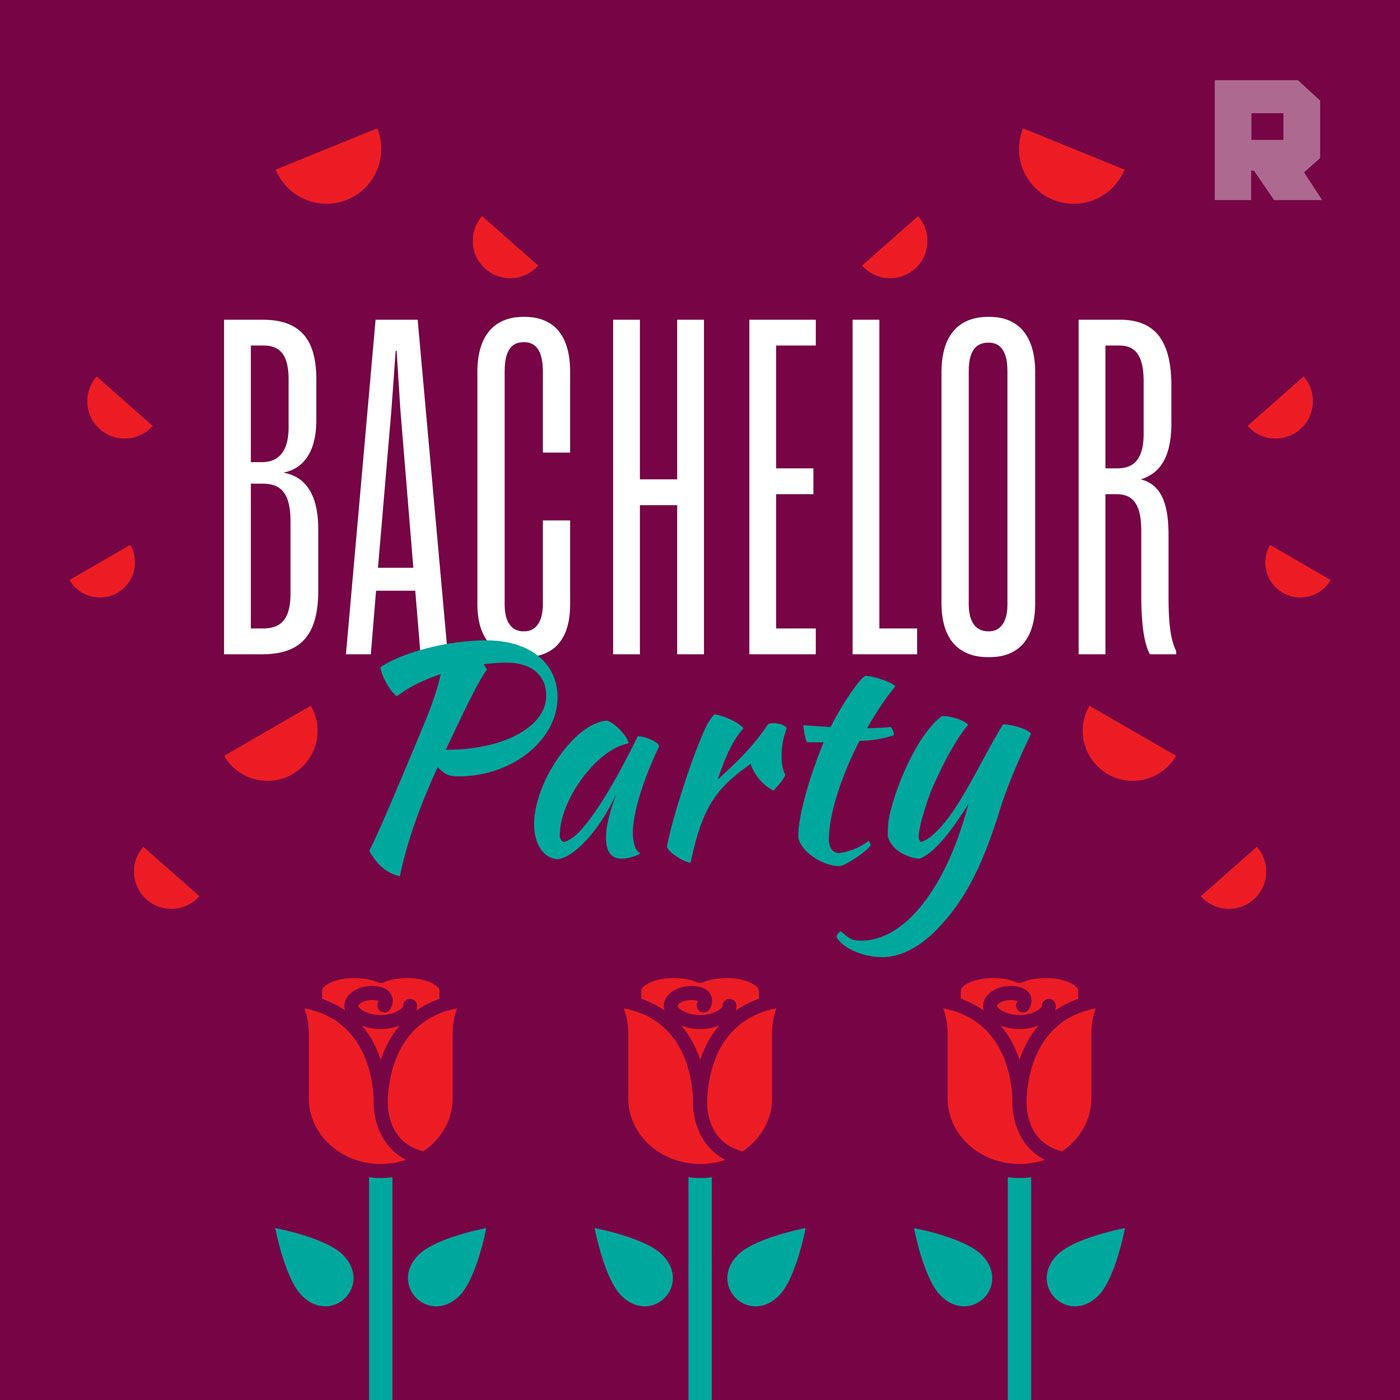 ESPN's Jay Bilas on Bachelor Nation and Reality TV